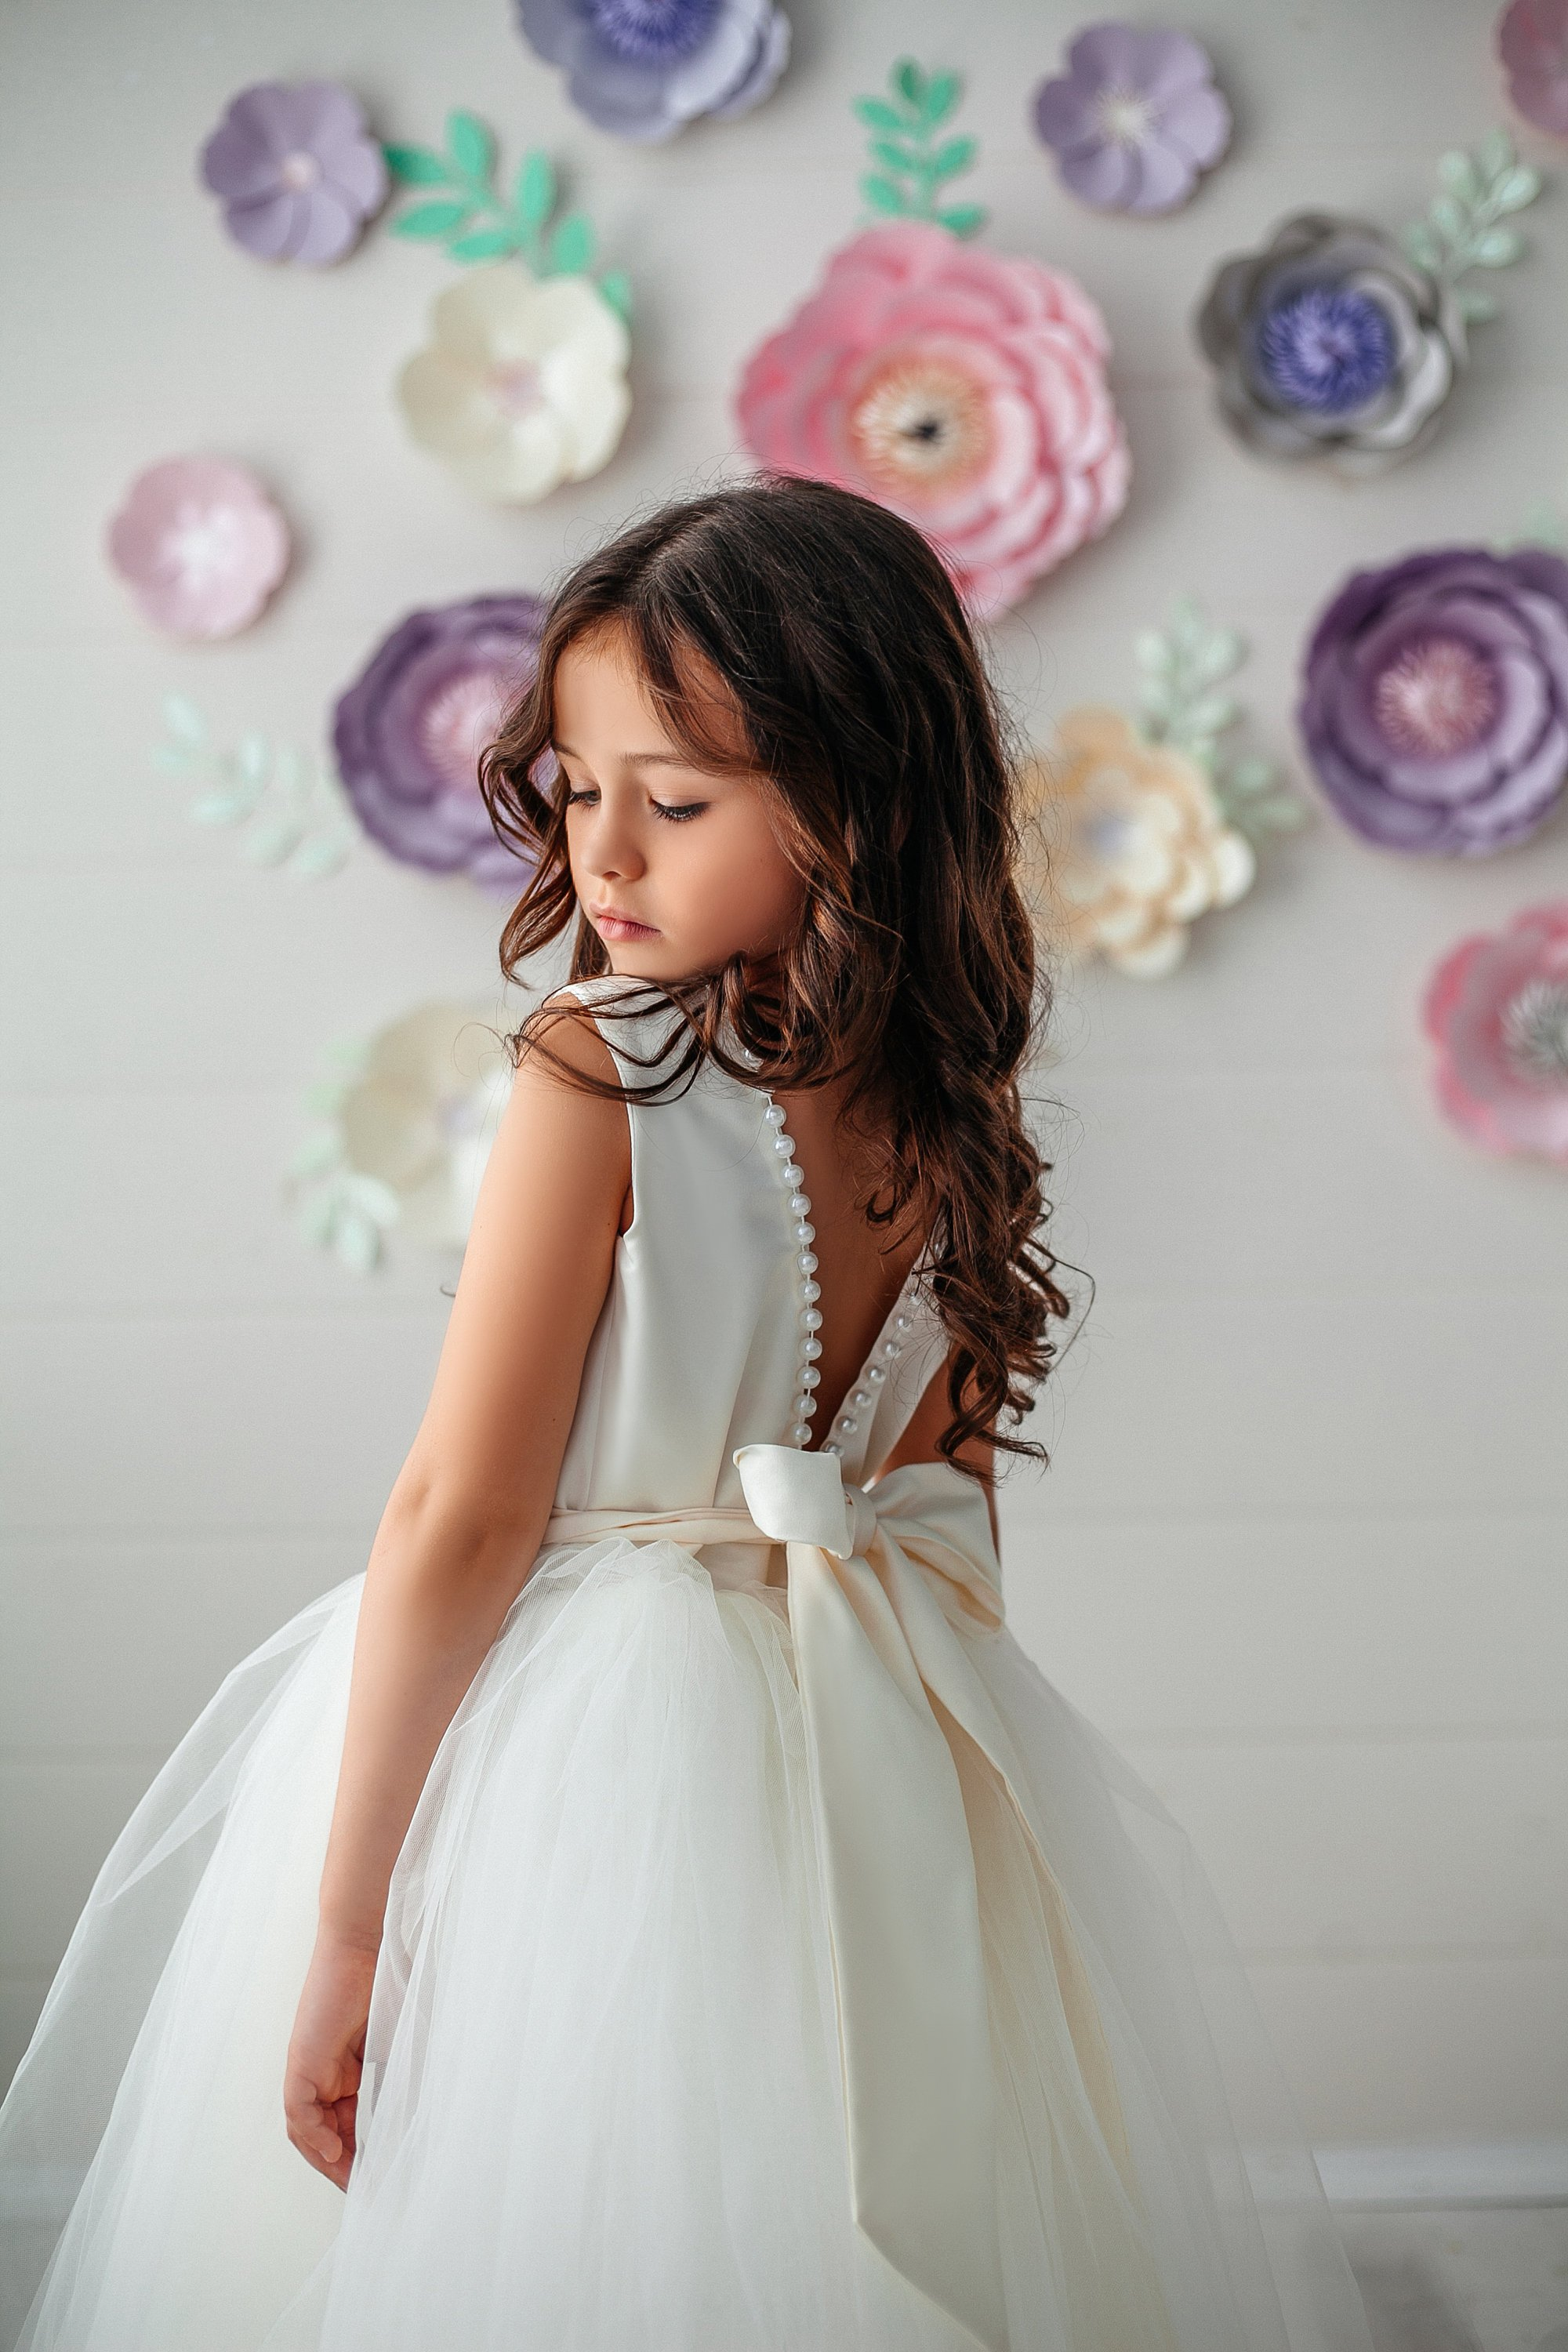 Tulle Flower Girl Dress calssic ivory.jpg